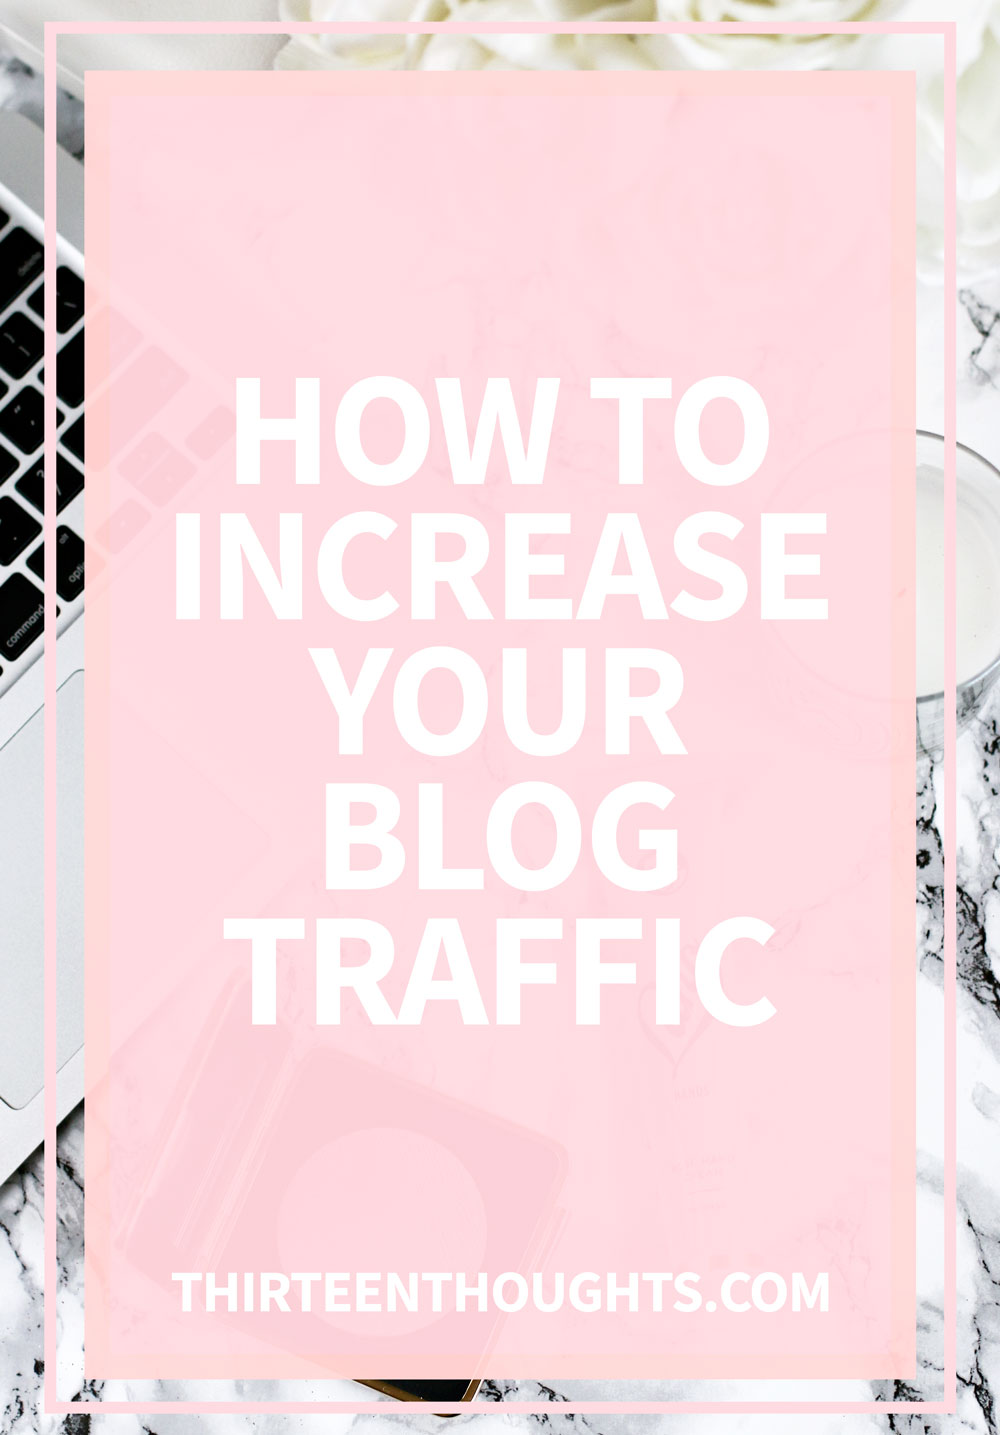 BLOG-TRAFFIC-TIPS